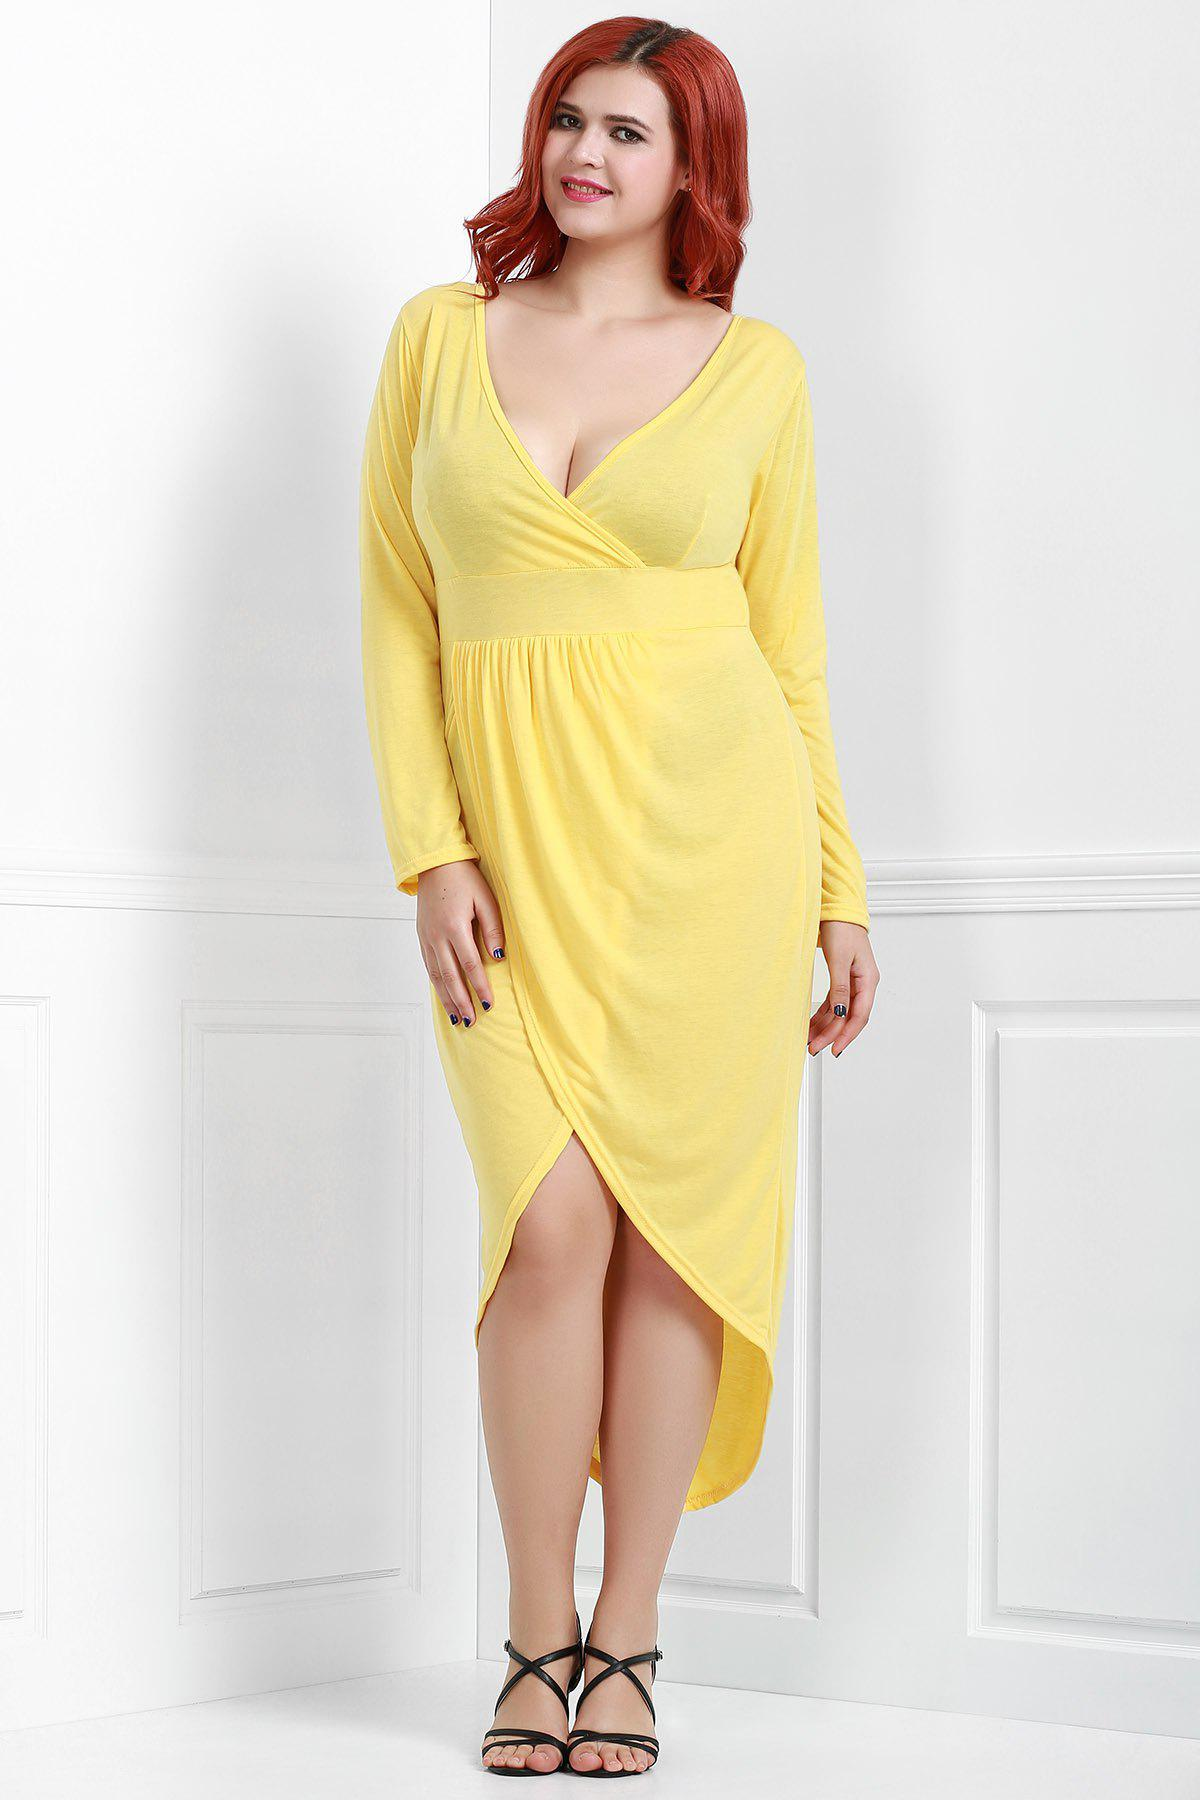 Chic Women's V-Neck Long Sleeve Solid Color Wrap Dress - YELLOW 2XL